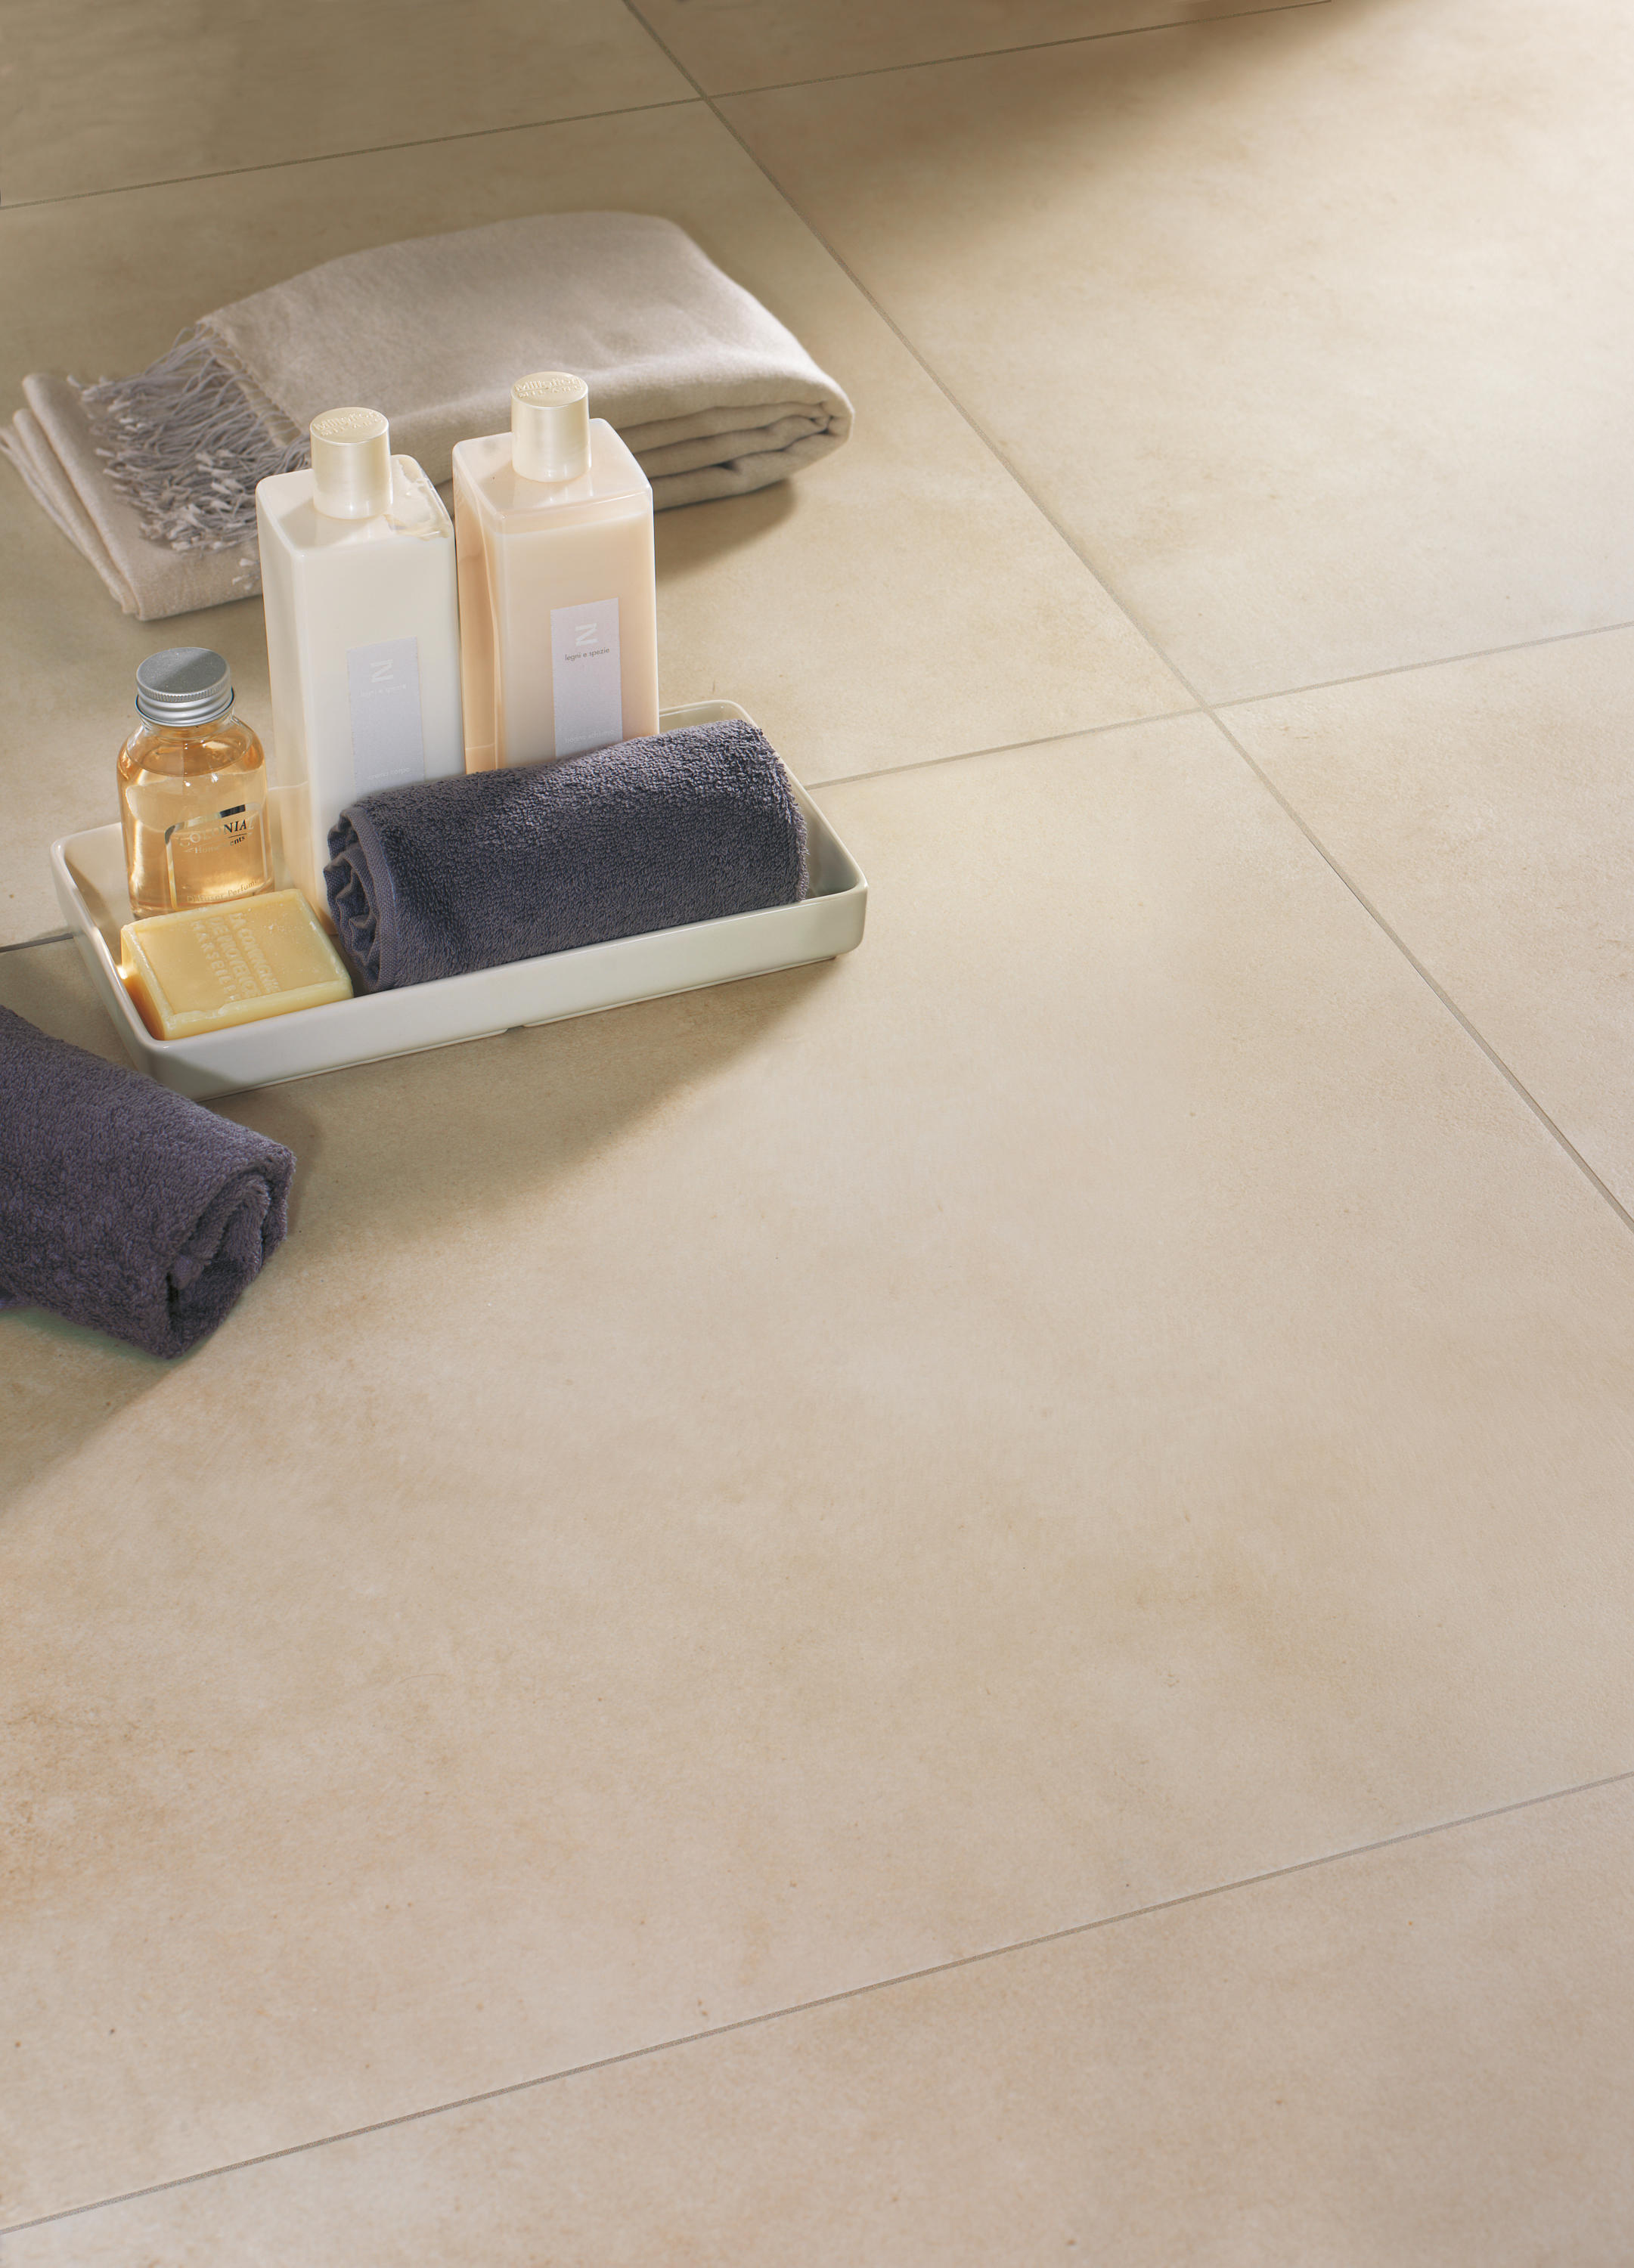 Fliese betonoptik awesome fr wnde fr bden london roca for Linoleum betonoptik